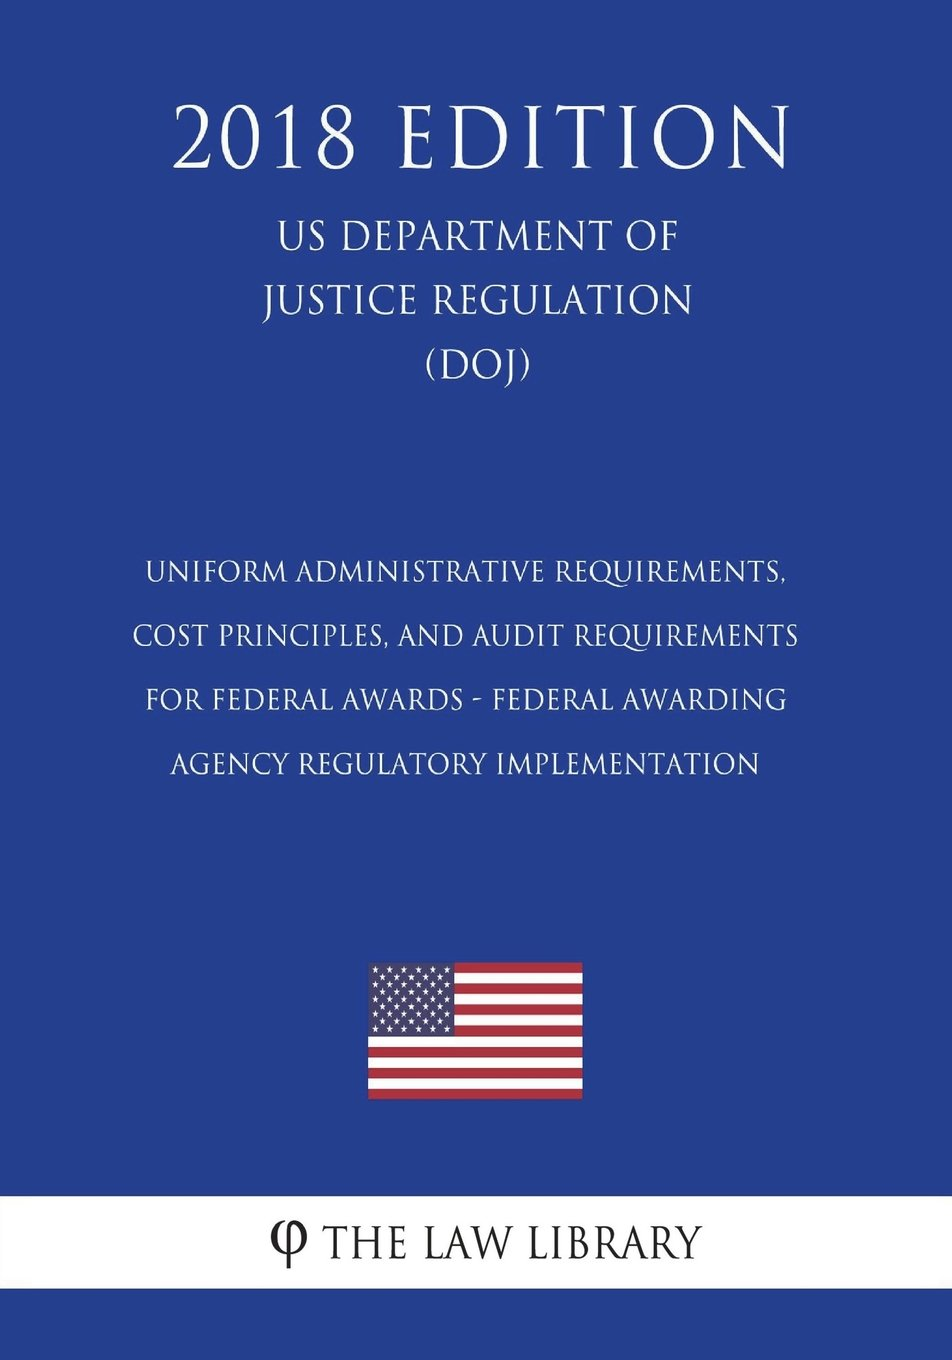 Read Online Uniform Administrative Requirements, Cost Principles, and Audit Requirements for Federal Awards - Federal Awarding Agency Regulatory Implementation ... of Justice Regulation) (DOJ) (2018 Edition) pdf